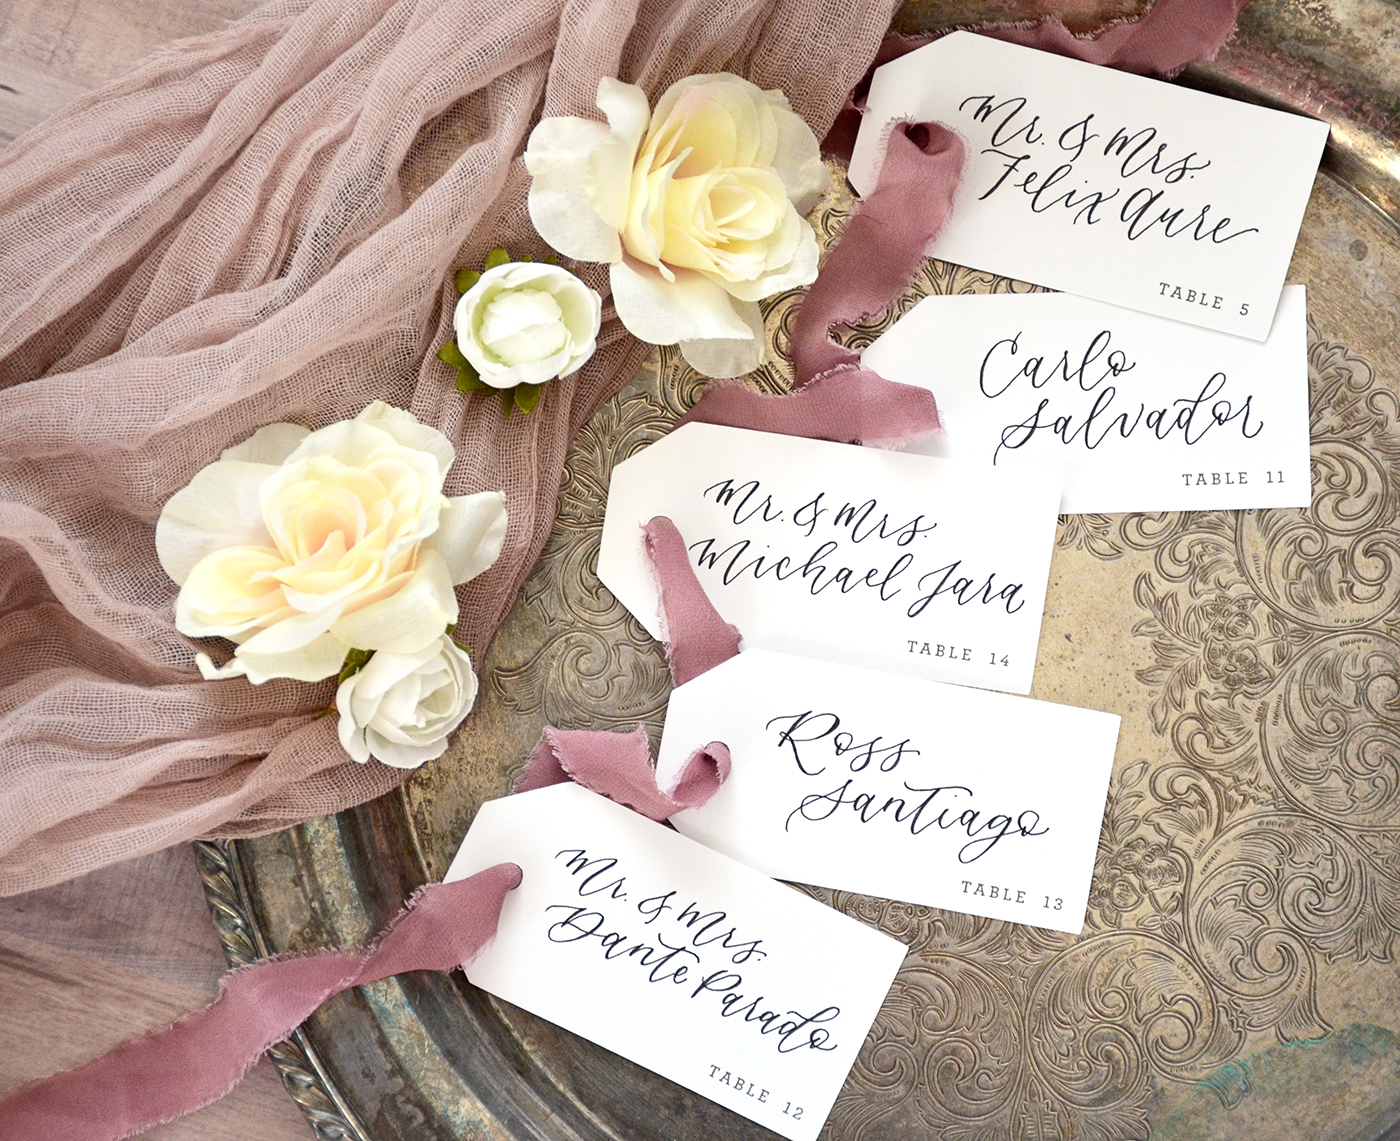 Sam Allen Creates Wedding Calligraphy Escort Name Tags with Table Numbers